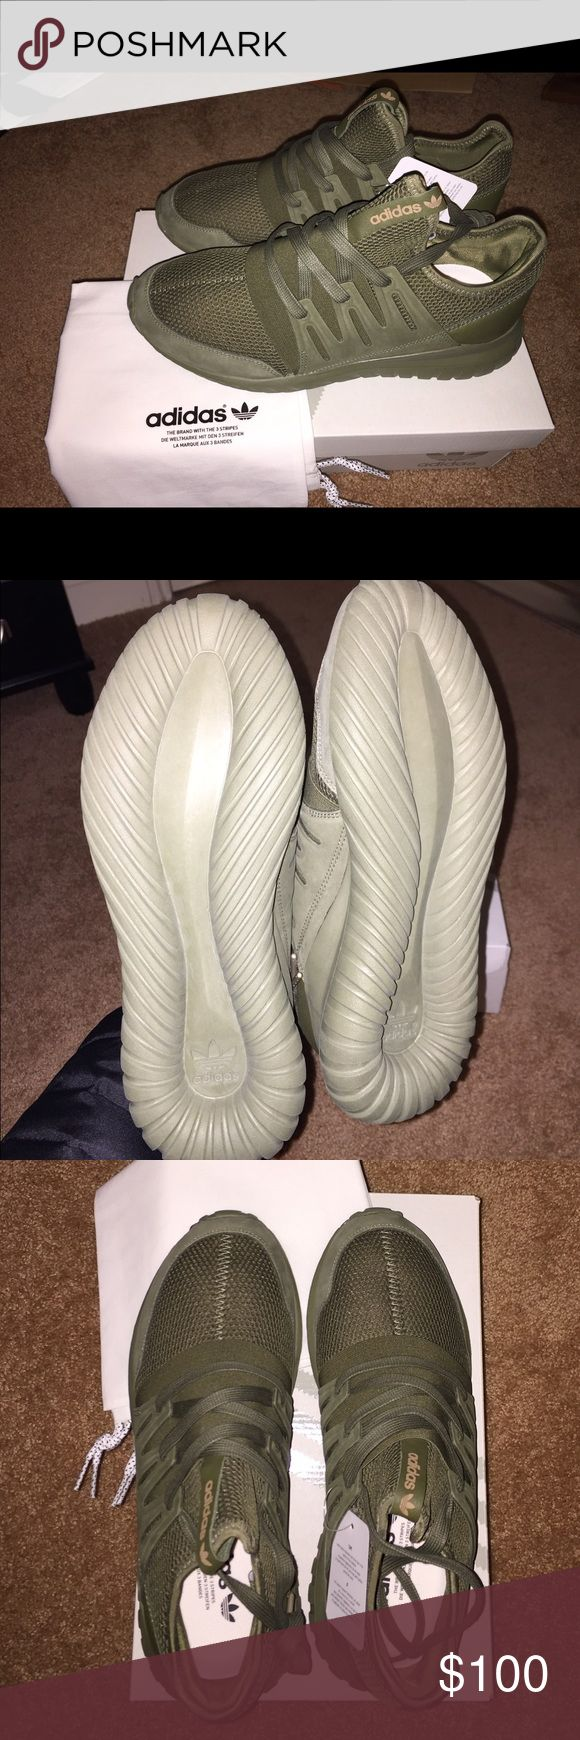 Custome olive green adidas sneakers Brand new, never worn, too big. Adidas Shoes Sneakers